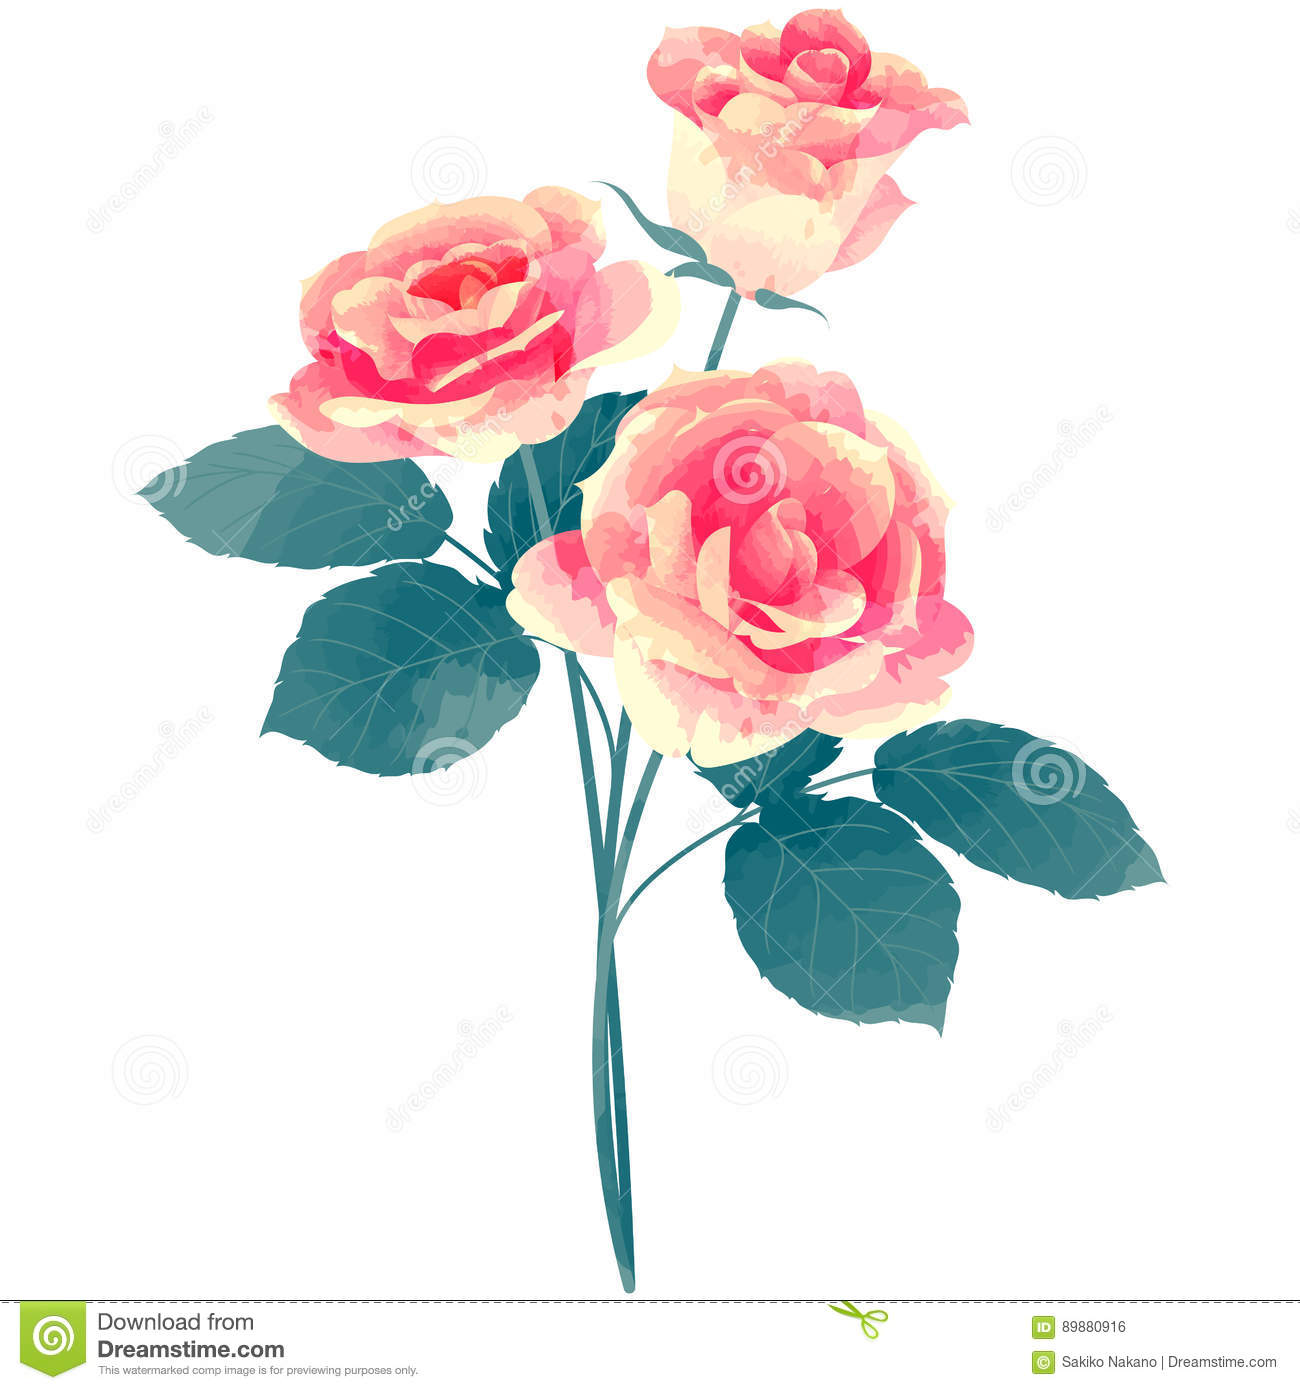 Rose - birth flower vector illustration in watercolor paint text